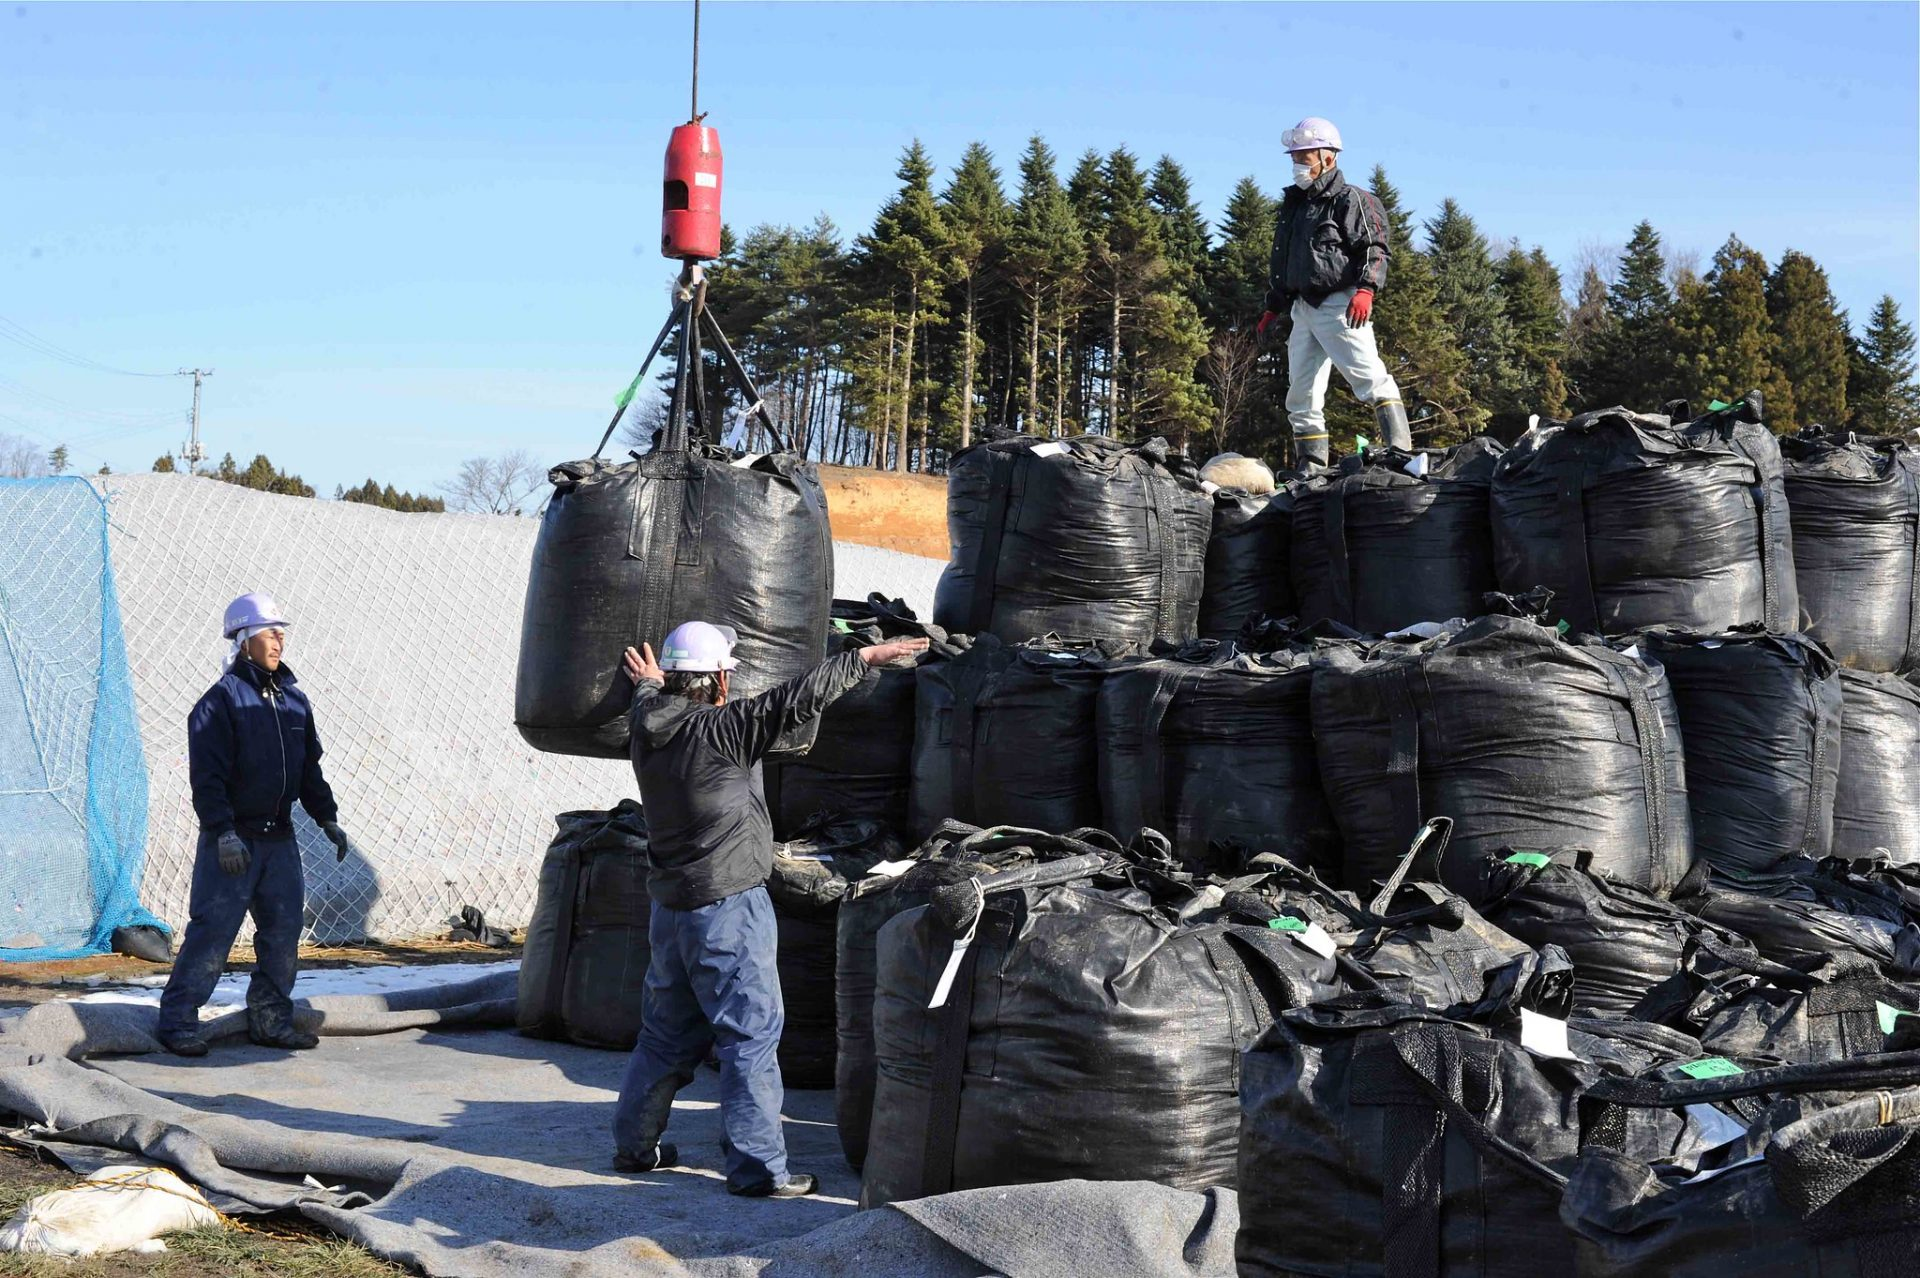 An update from Fukushima and the challenges that remain there